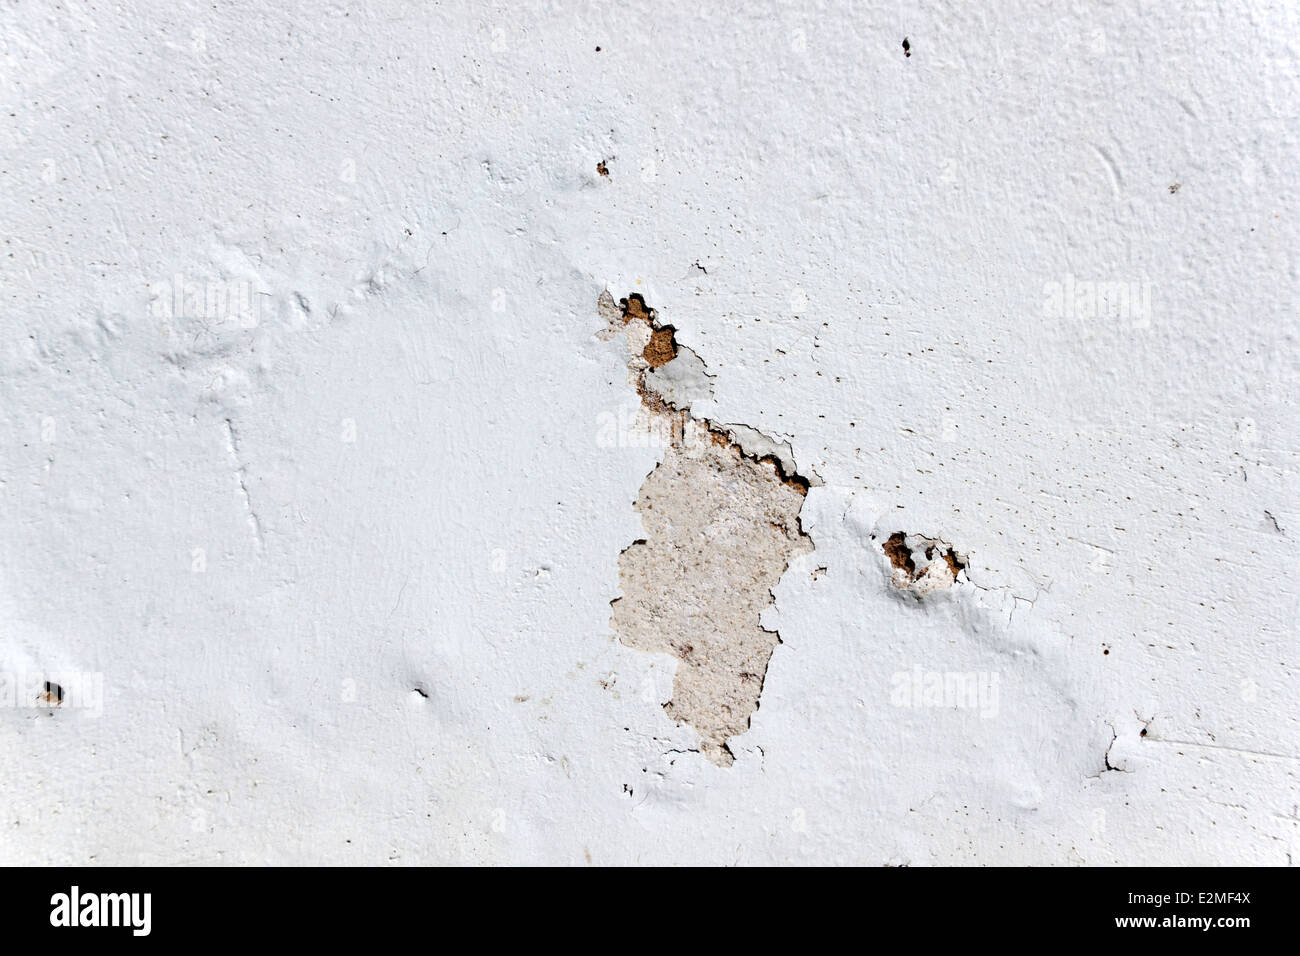 deterioration of exterior wall due to rising damp - Stock Image